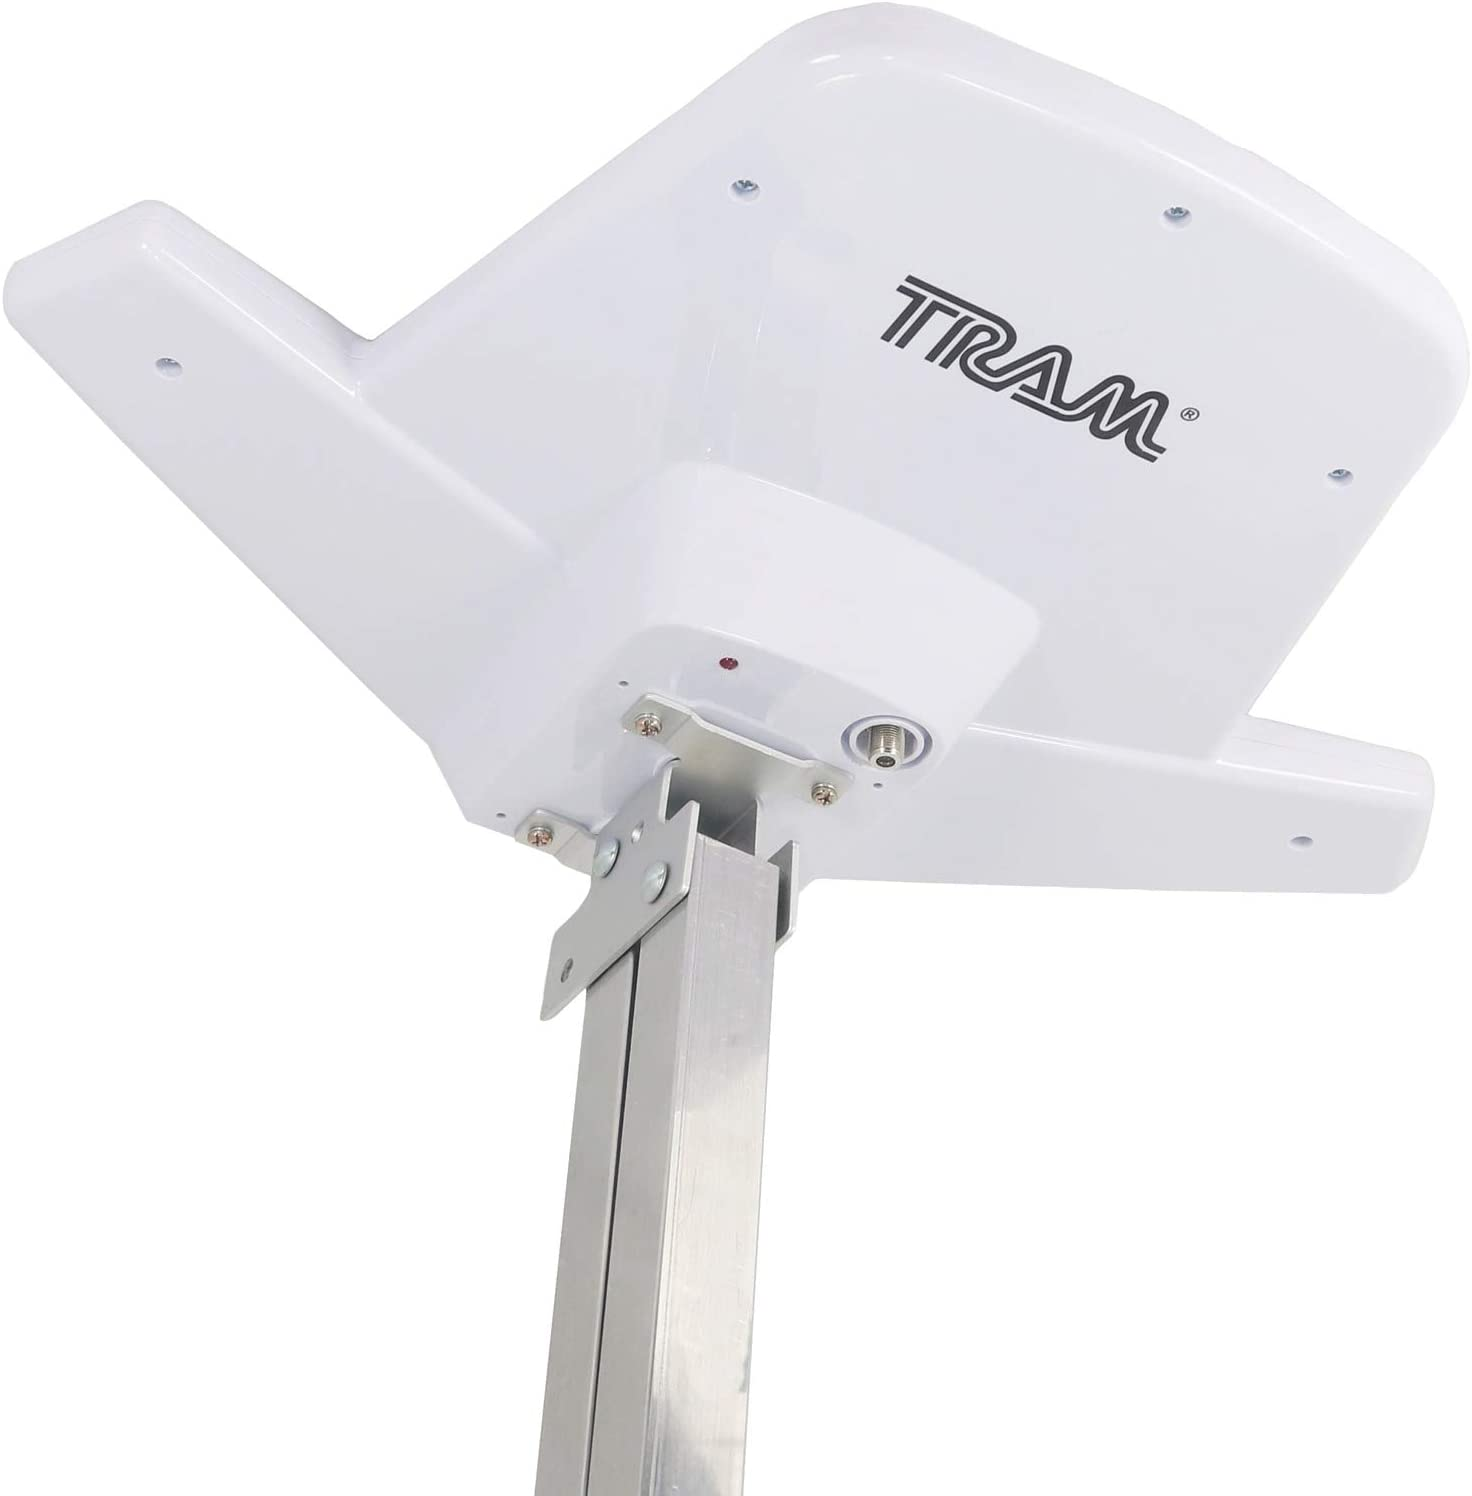 Tram HDTV Digital HDTV Amplified Outdoor Antenna for Home or RV Head Replacement,bat-Wing-Style retrofit